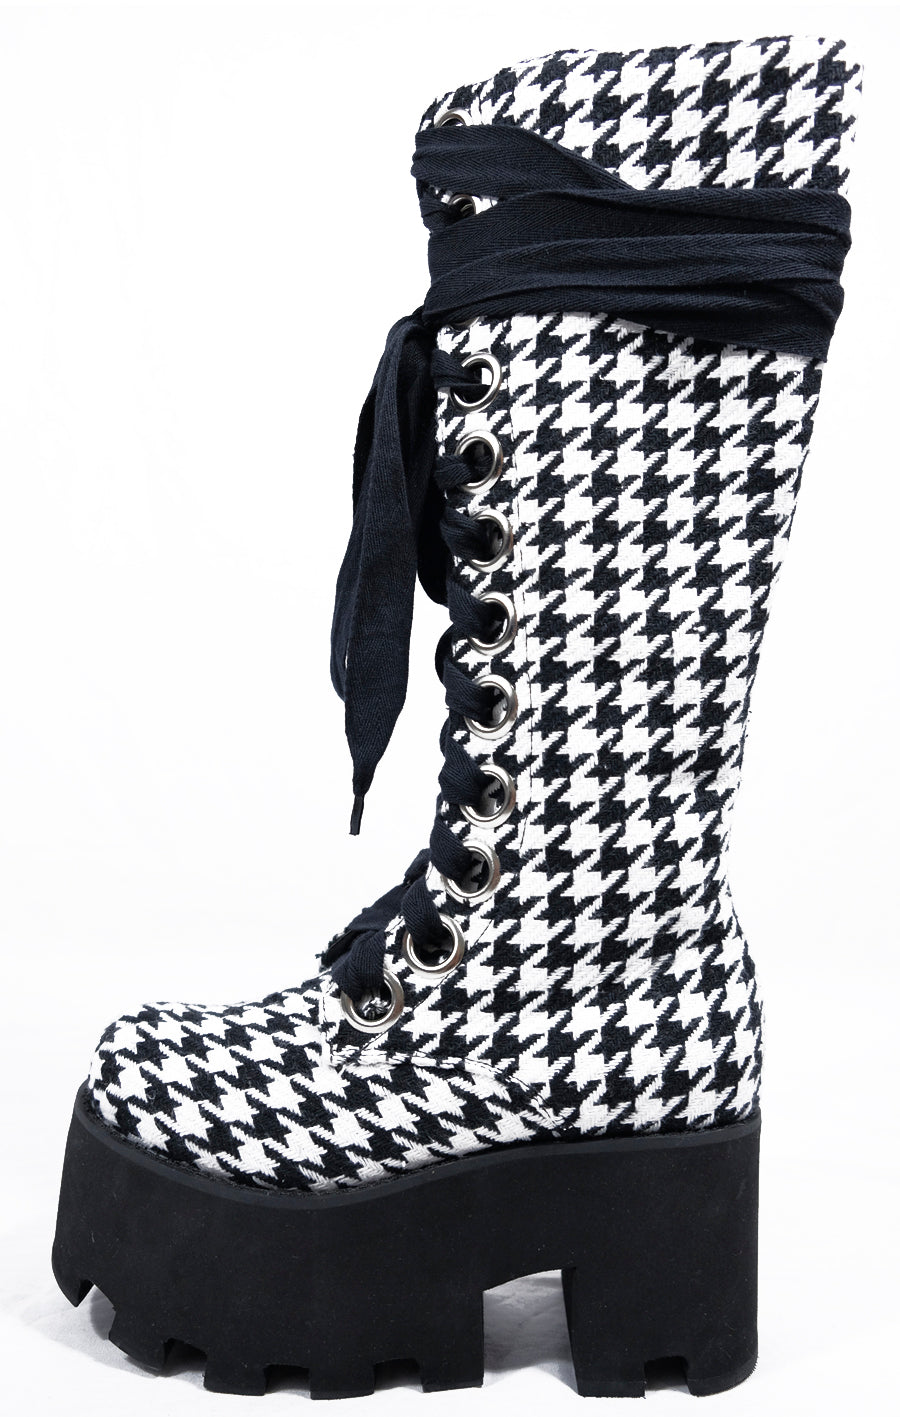 Houndstooth Knee High Boot